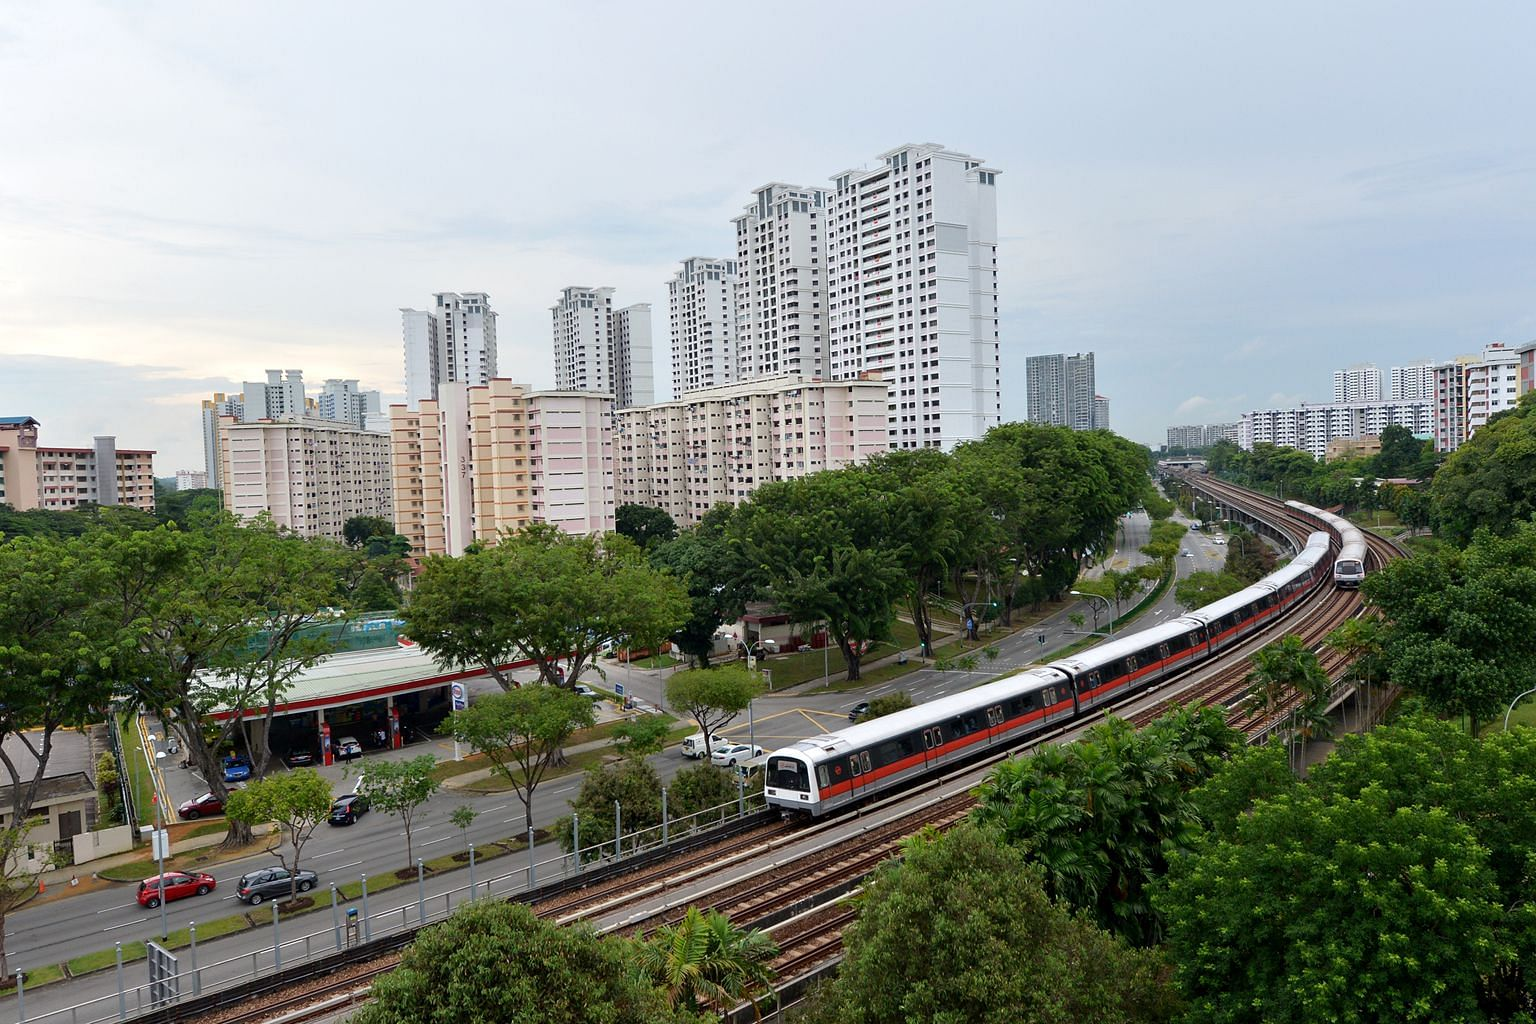 No other company's proposed privatisation has generated as much interest as that of SMRT, as it is hard to find another publicly listed company that affects the lives of millions of Singaporeans on a daily basis.